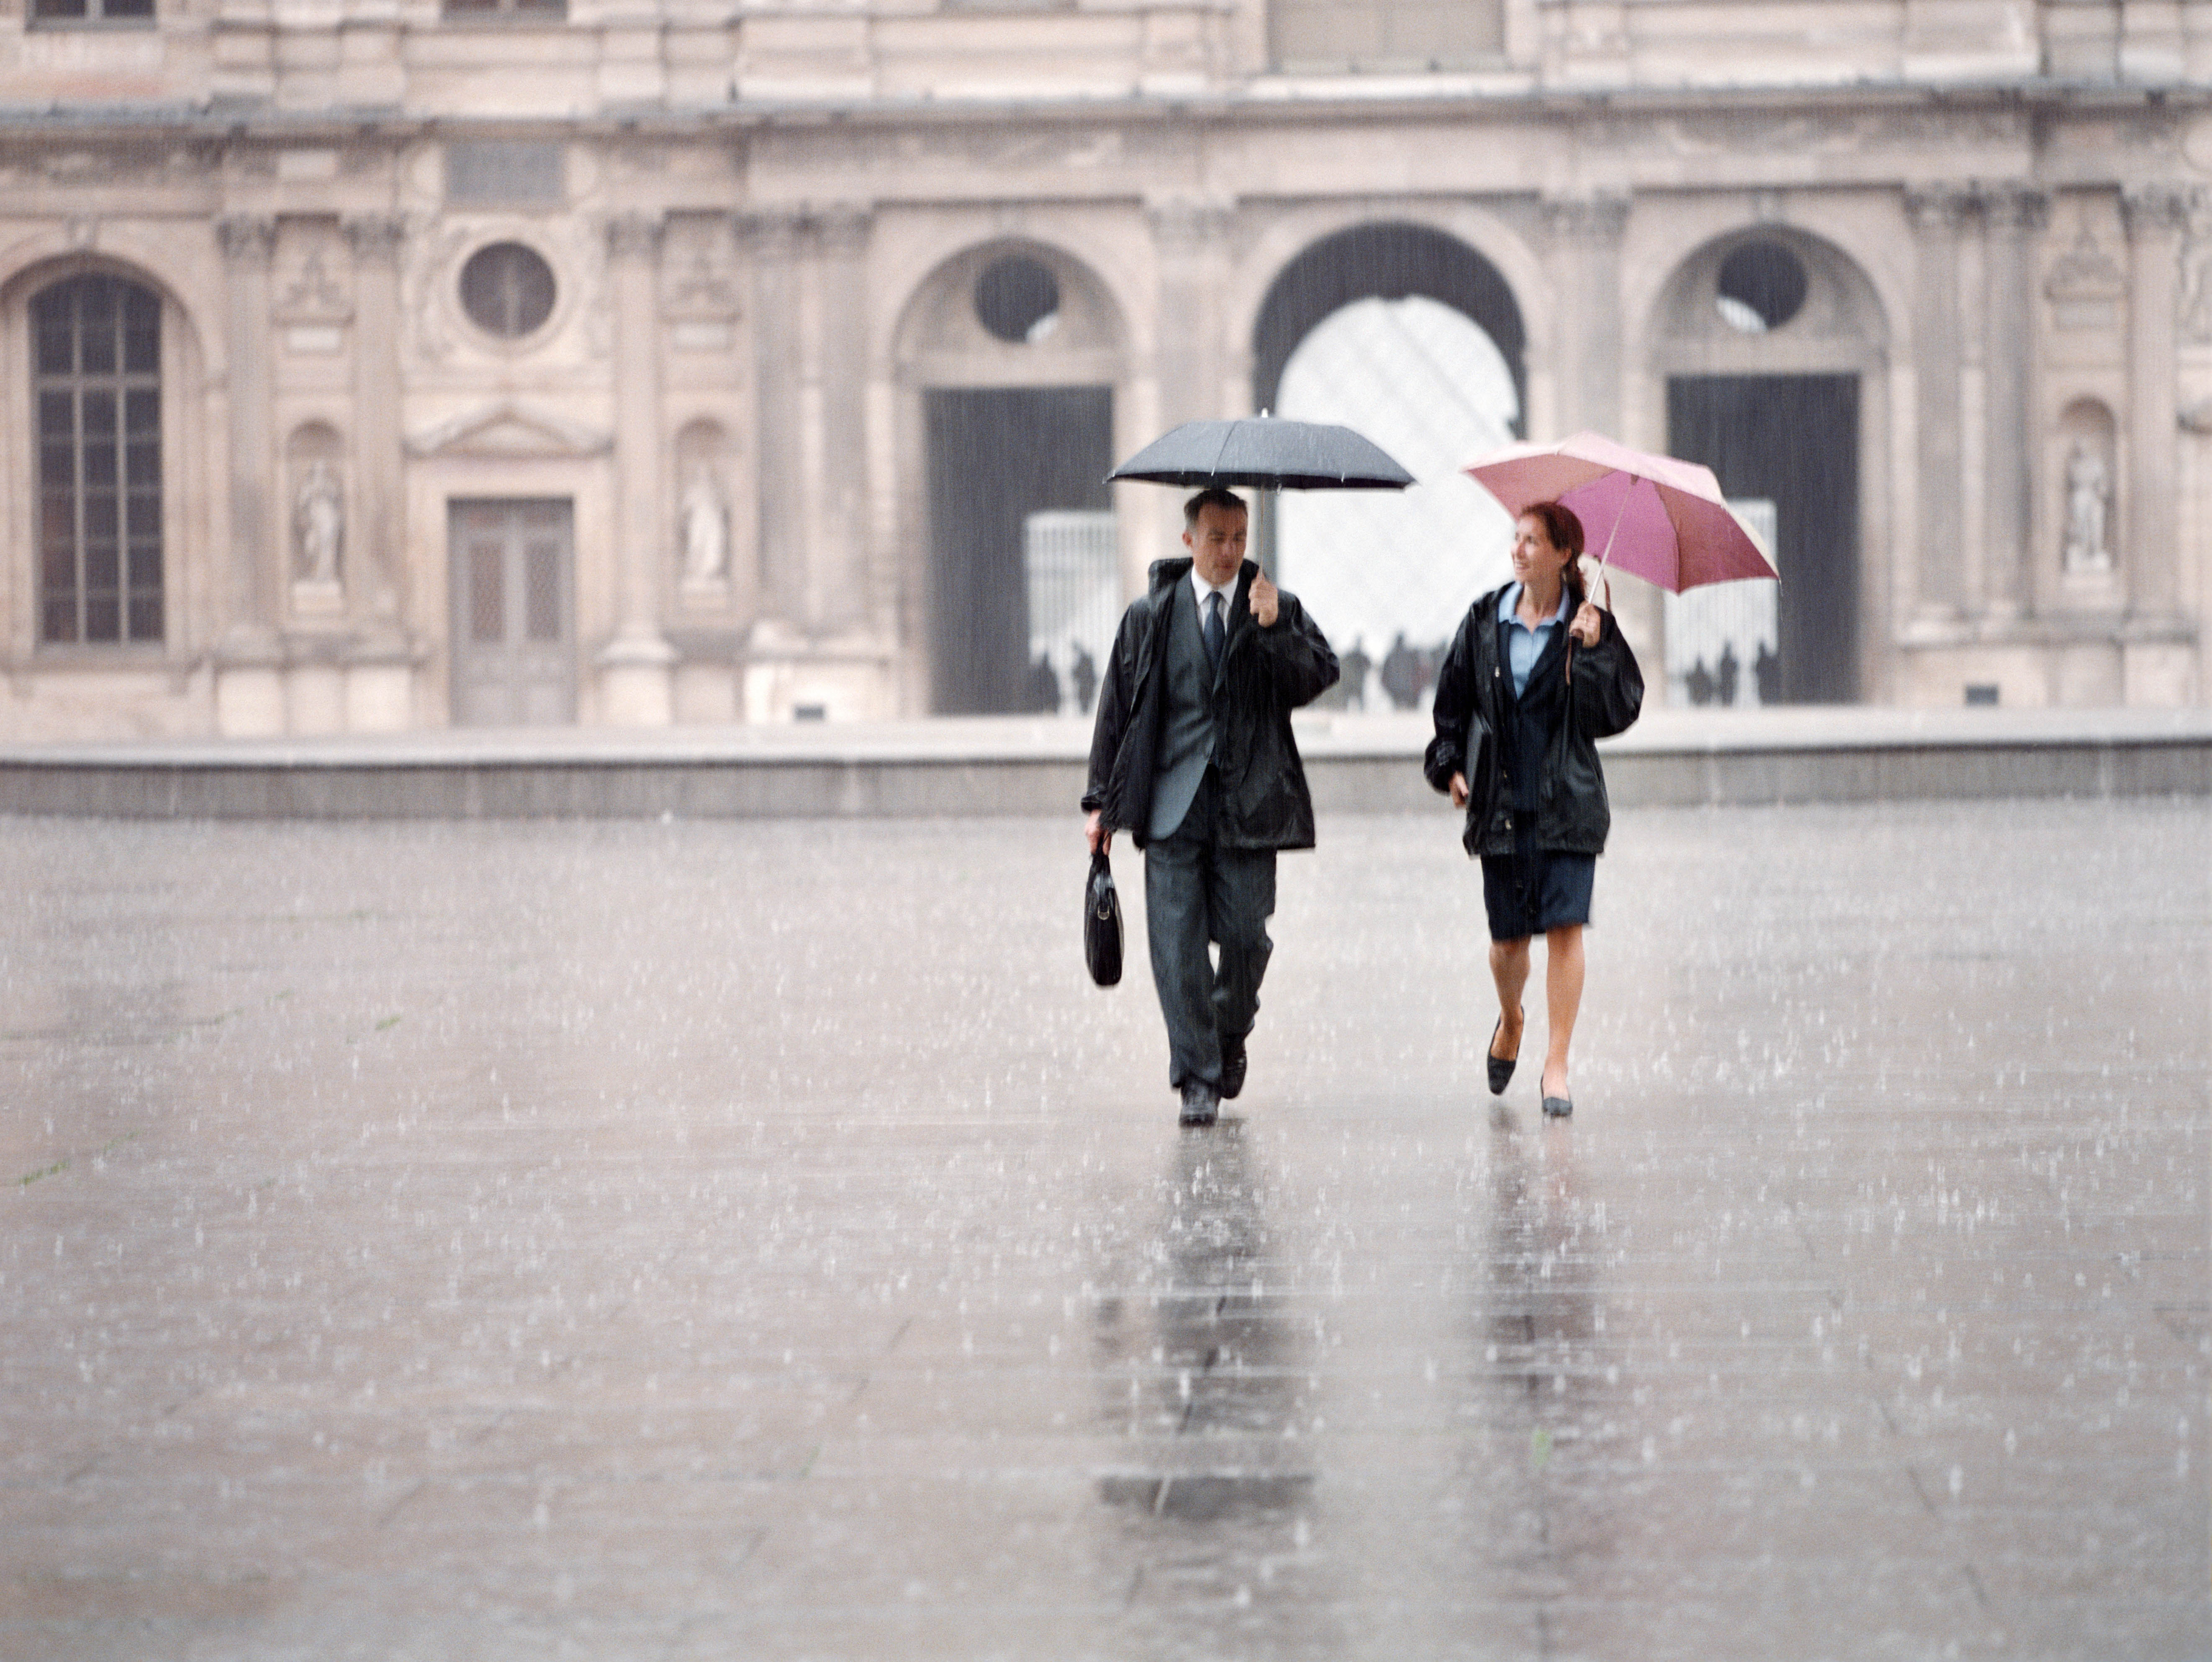 Business colleagues walking together in the rain